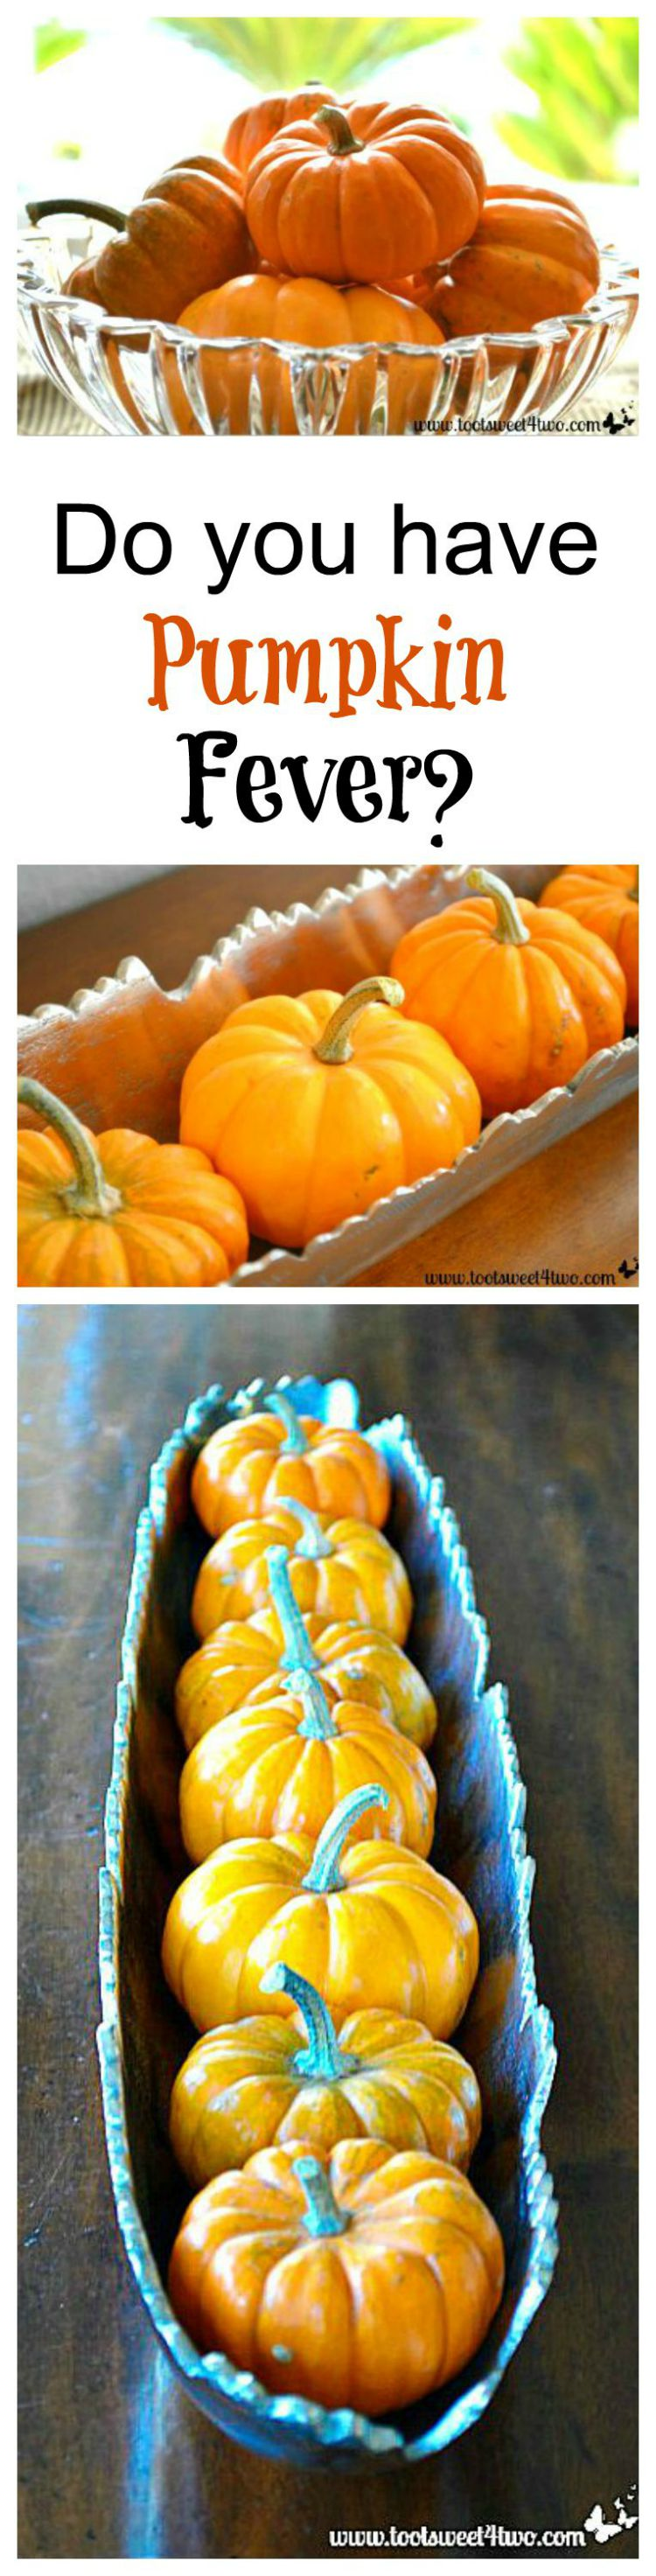 Do You Have Pumpkin Fever collage